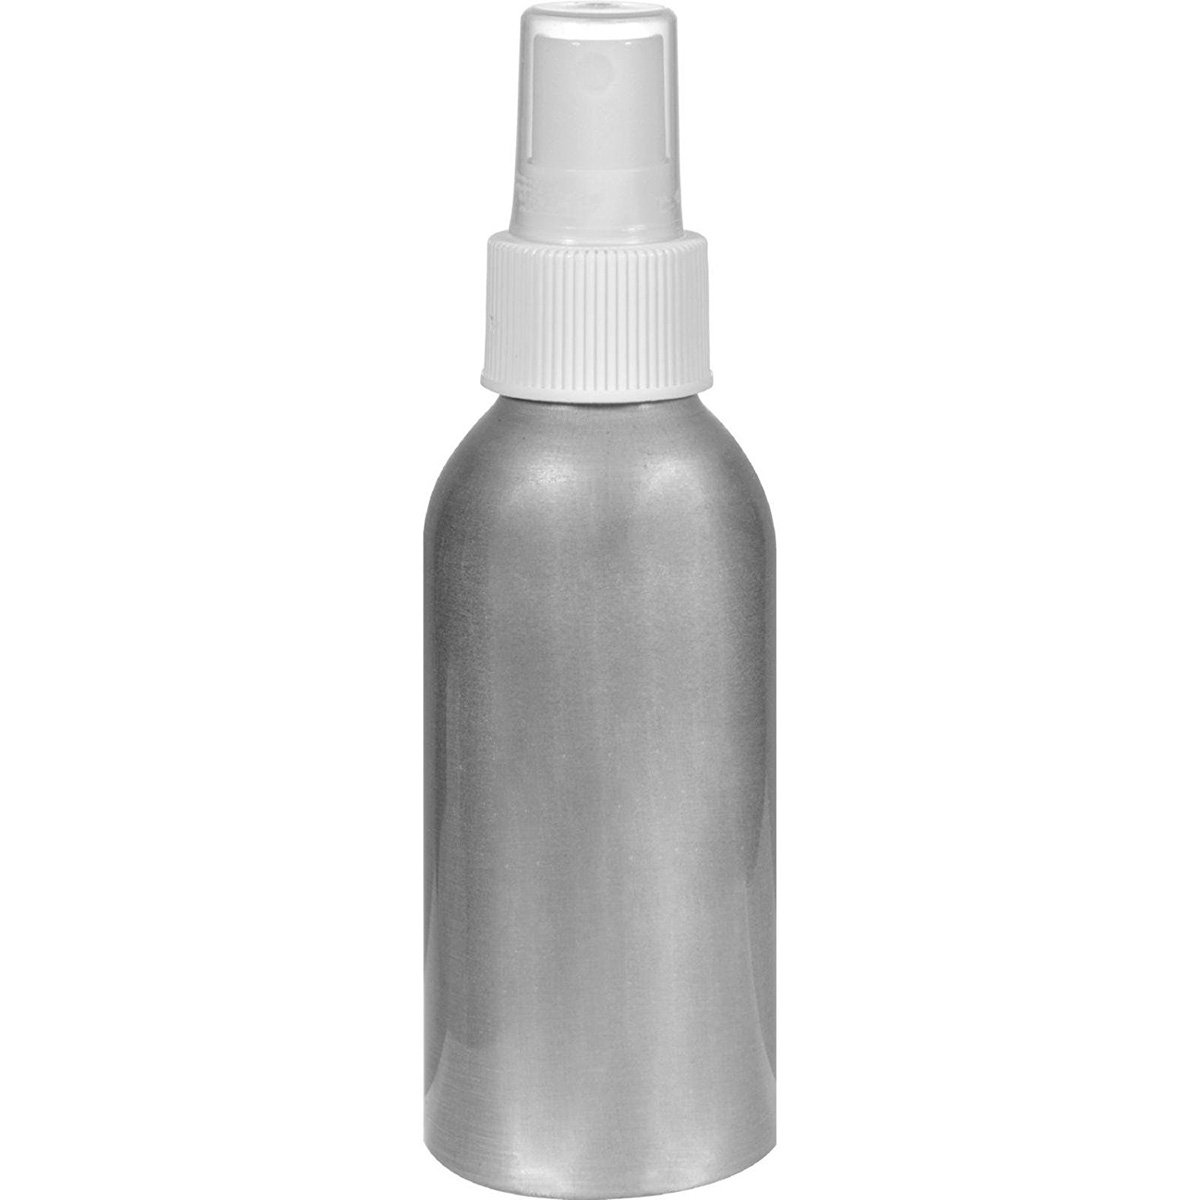 AURA CACIA MIST BOTTLE,EMPTY W/CAP, 4 OZ CASE_12 by Aura Cacia